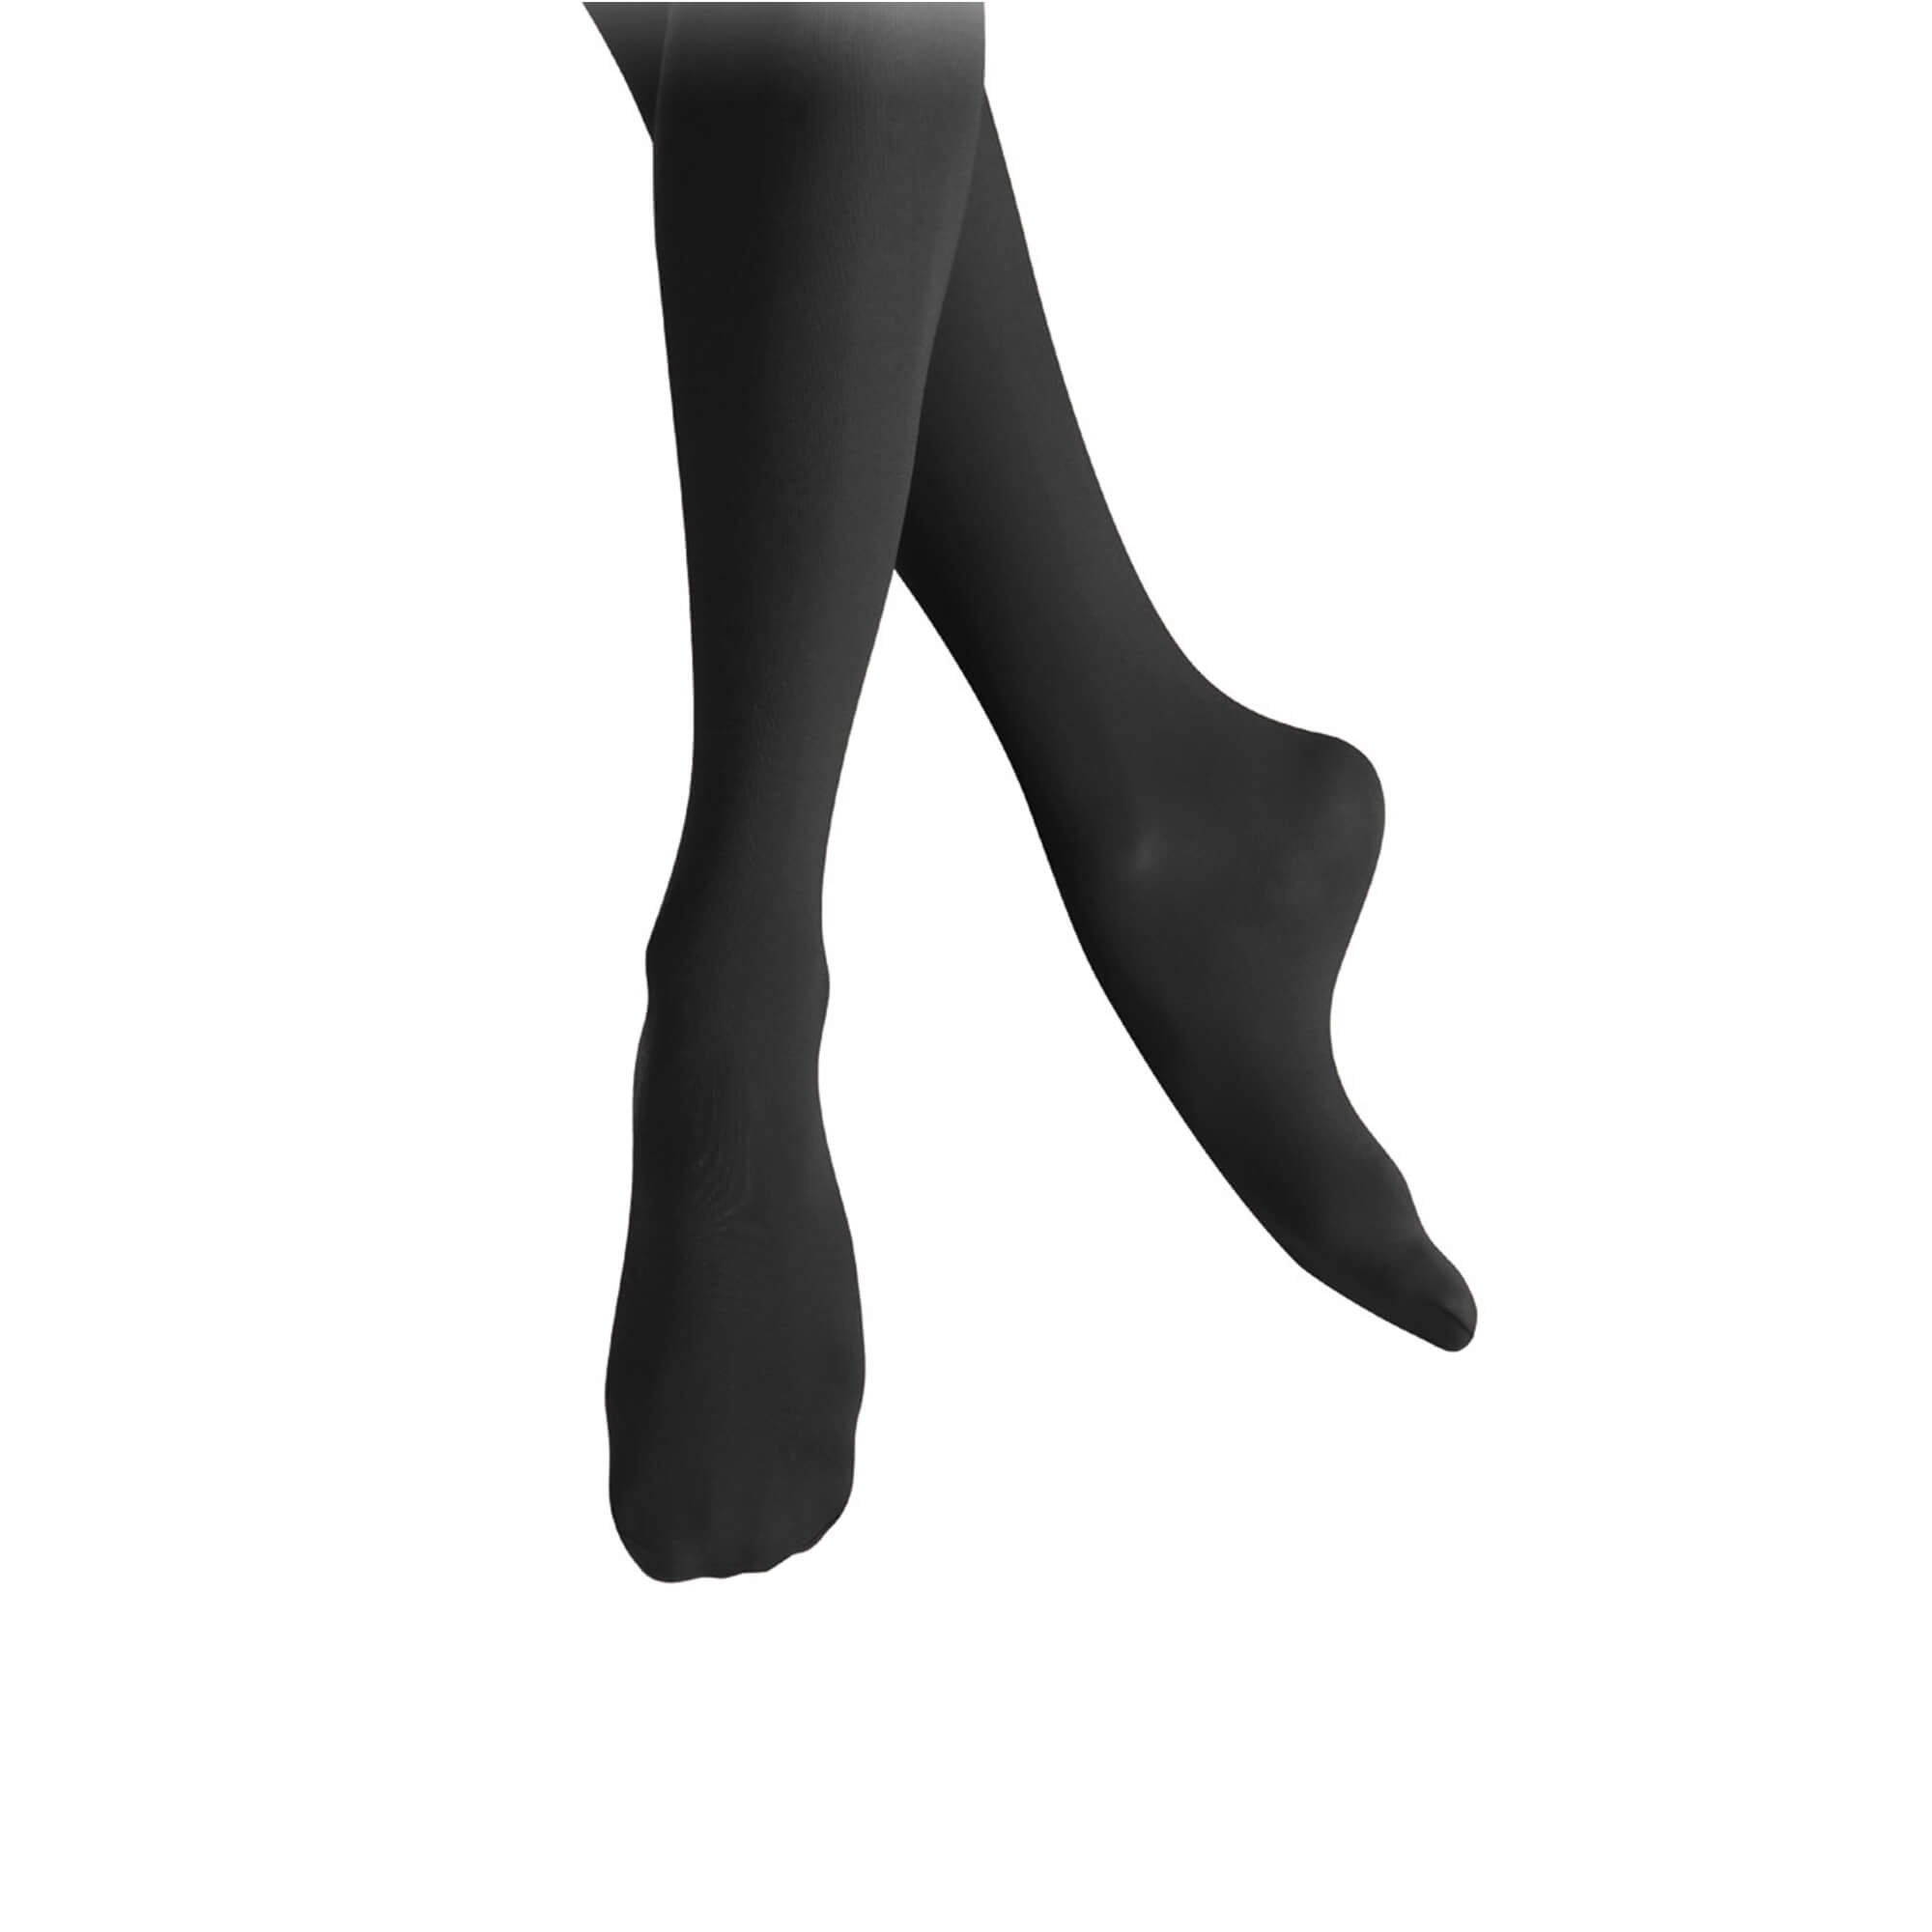 Leo's Ladies Firm Fit Convertible Supplex Tights